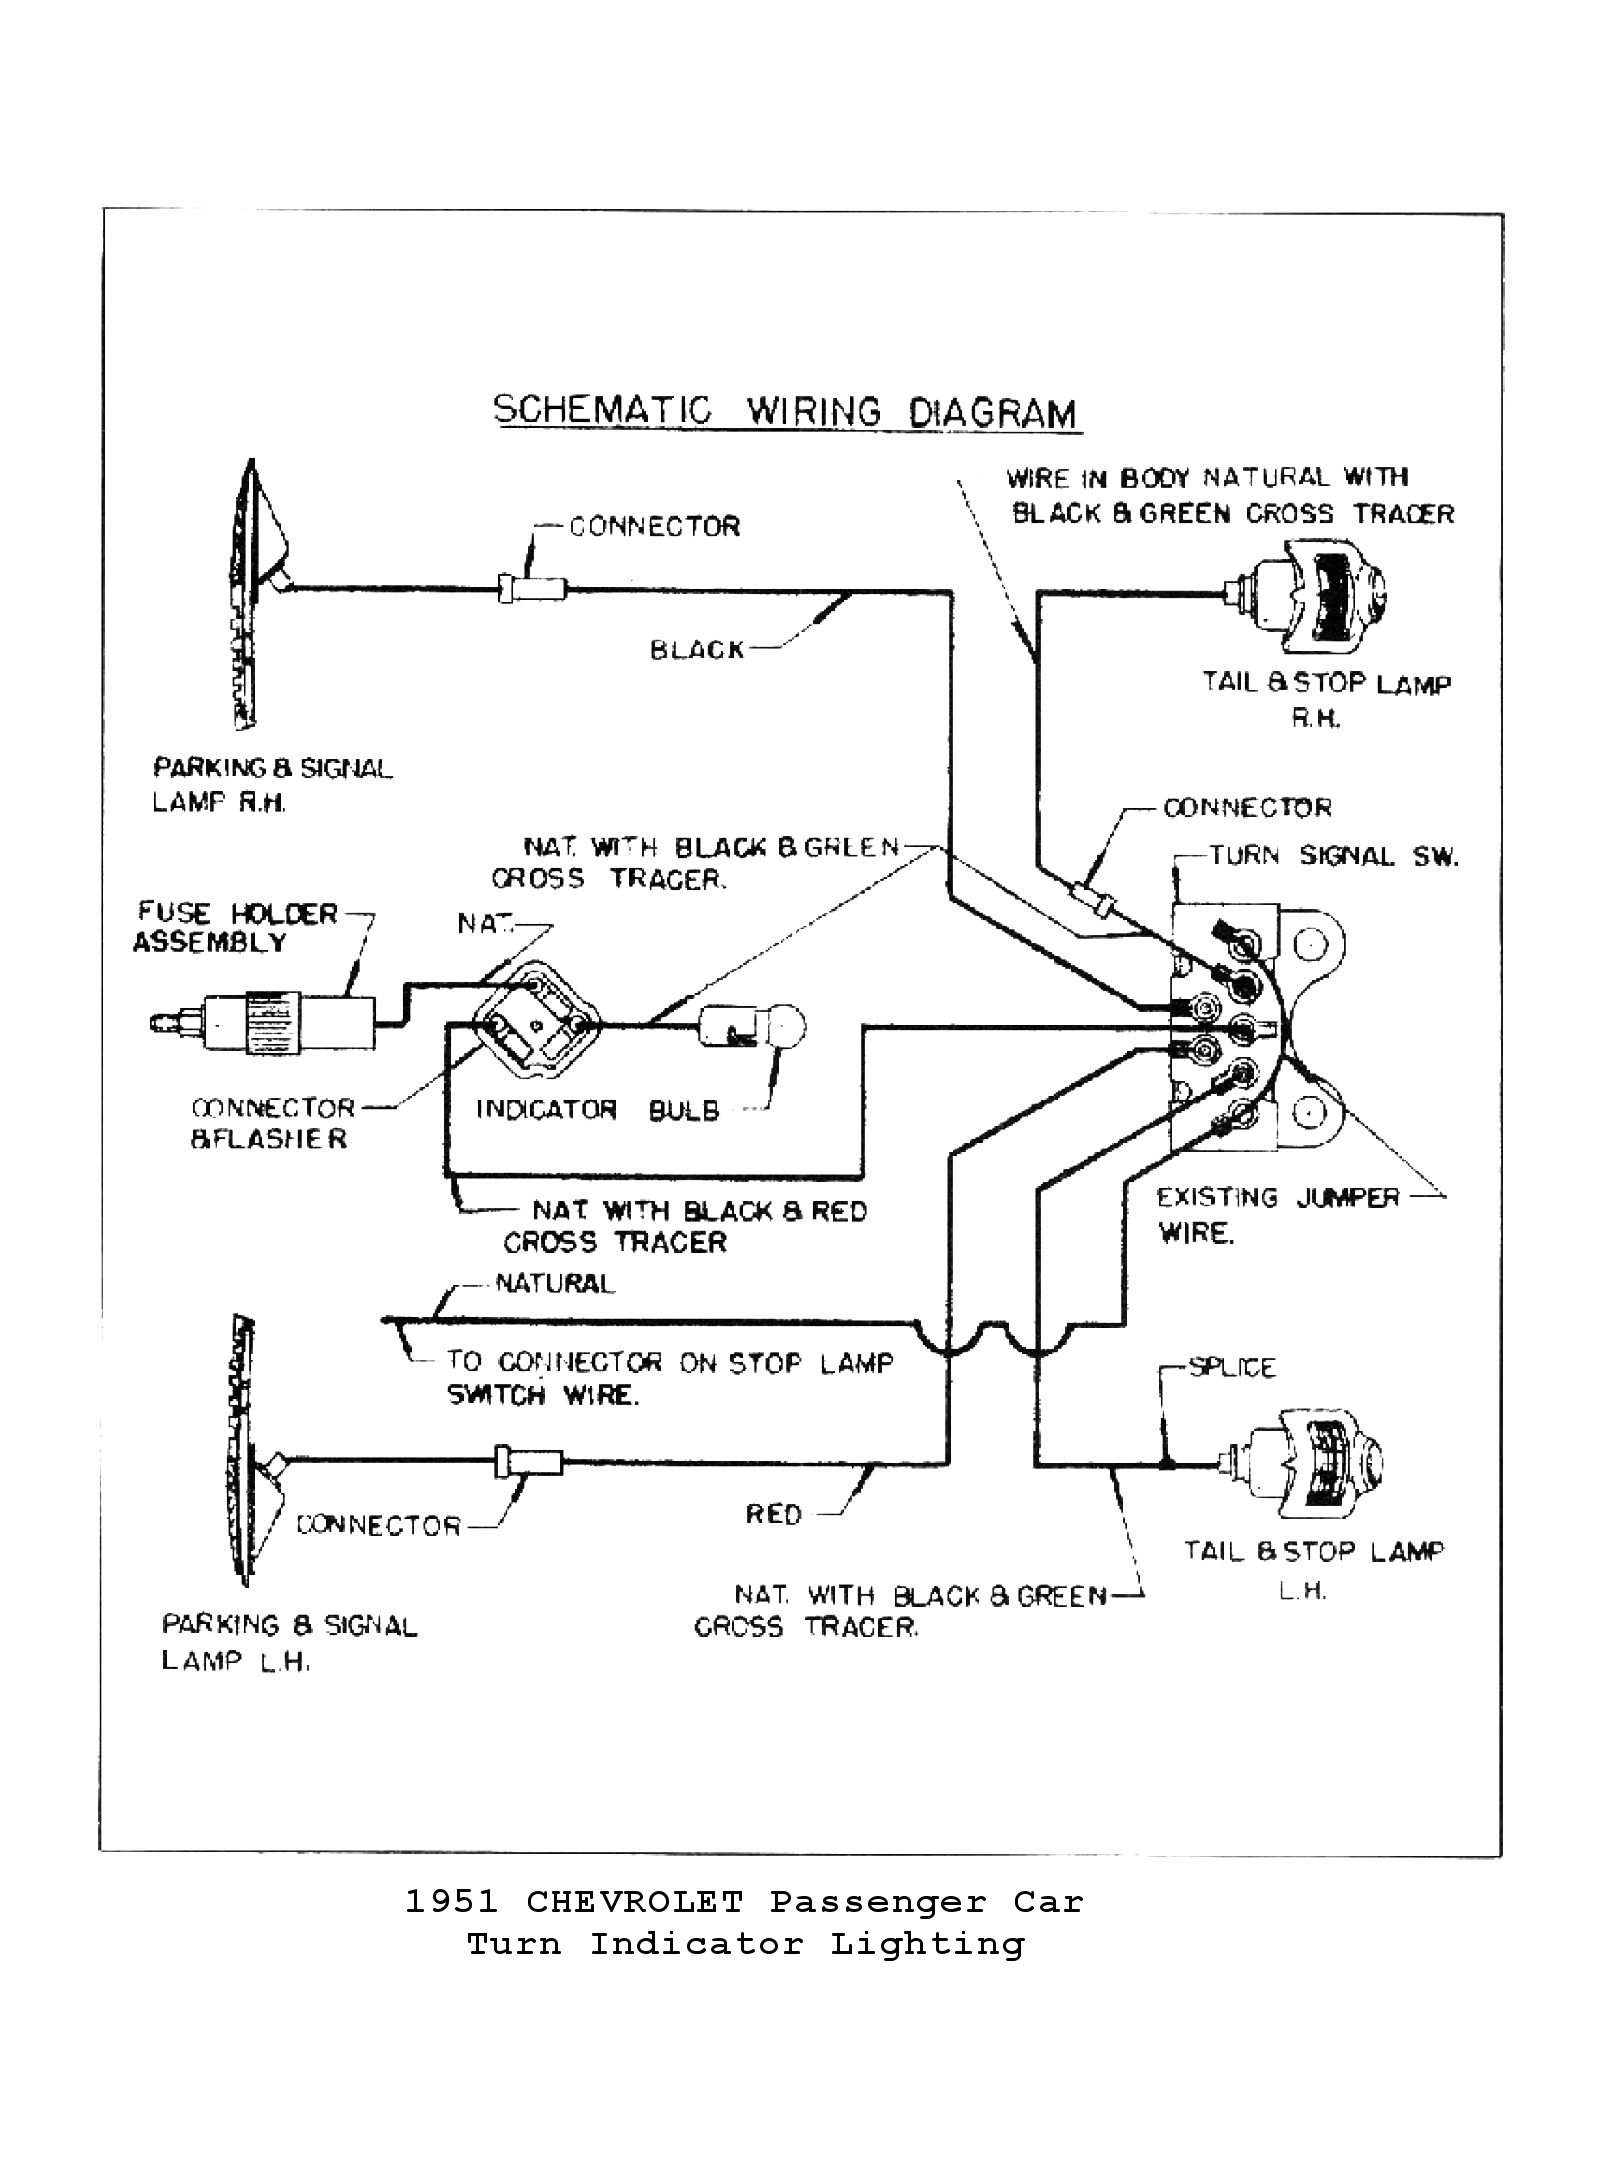 1951 Chevy Bel Air Wiring Diagram Libraries 72 C10 Engine Diagrams1951 Truck Directional Signals